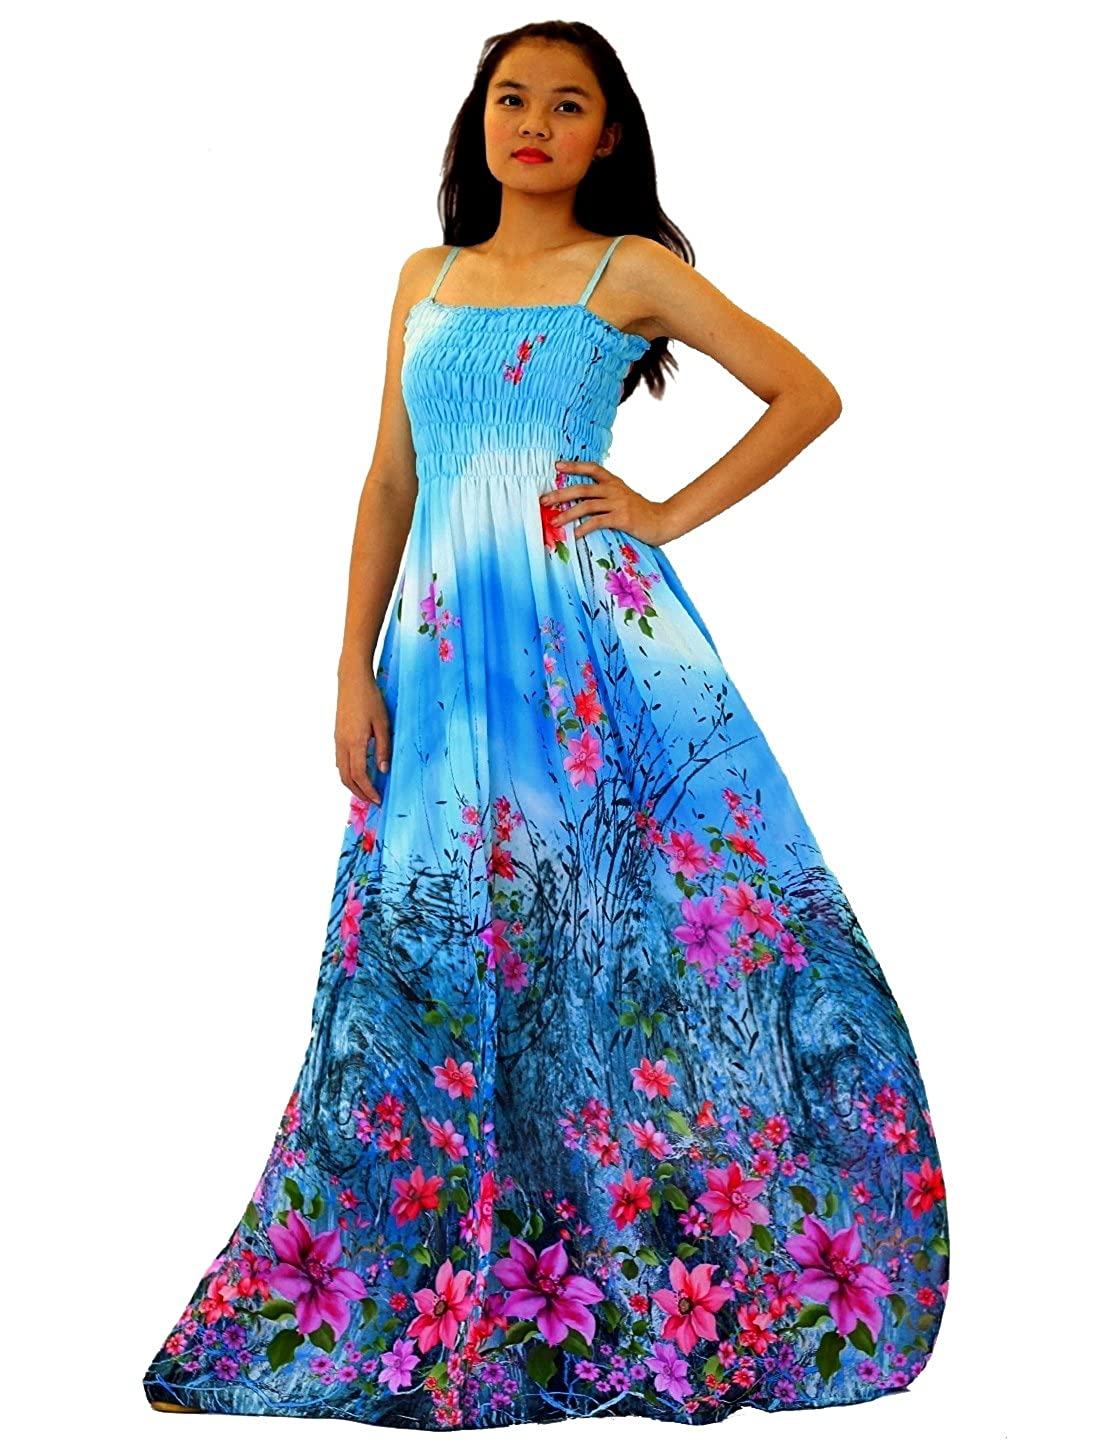 9375935fcab50 Maxi Dress Women Plus Size Tall Full Length Hawaiian Summer Cocktail Extra  Long Sexy Blue Floral at Amazon Women's Clothing store: